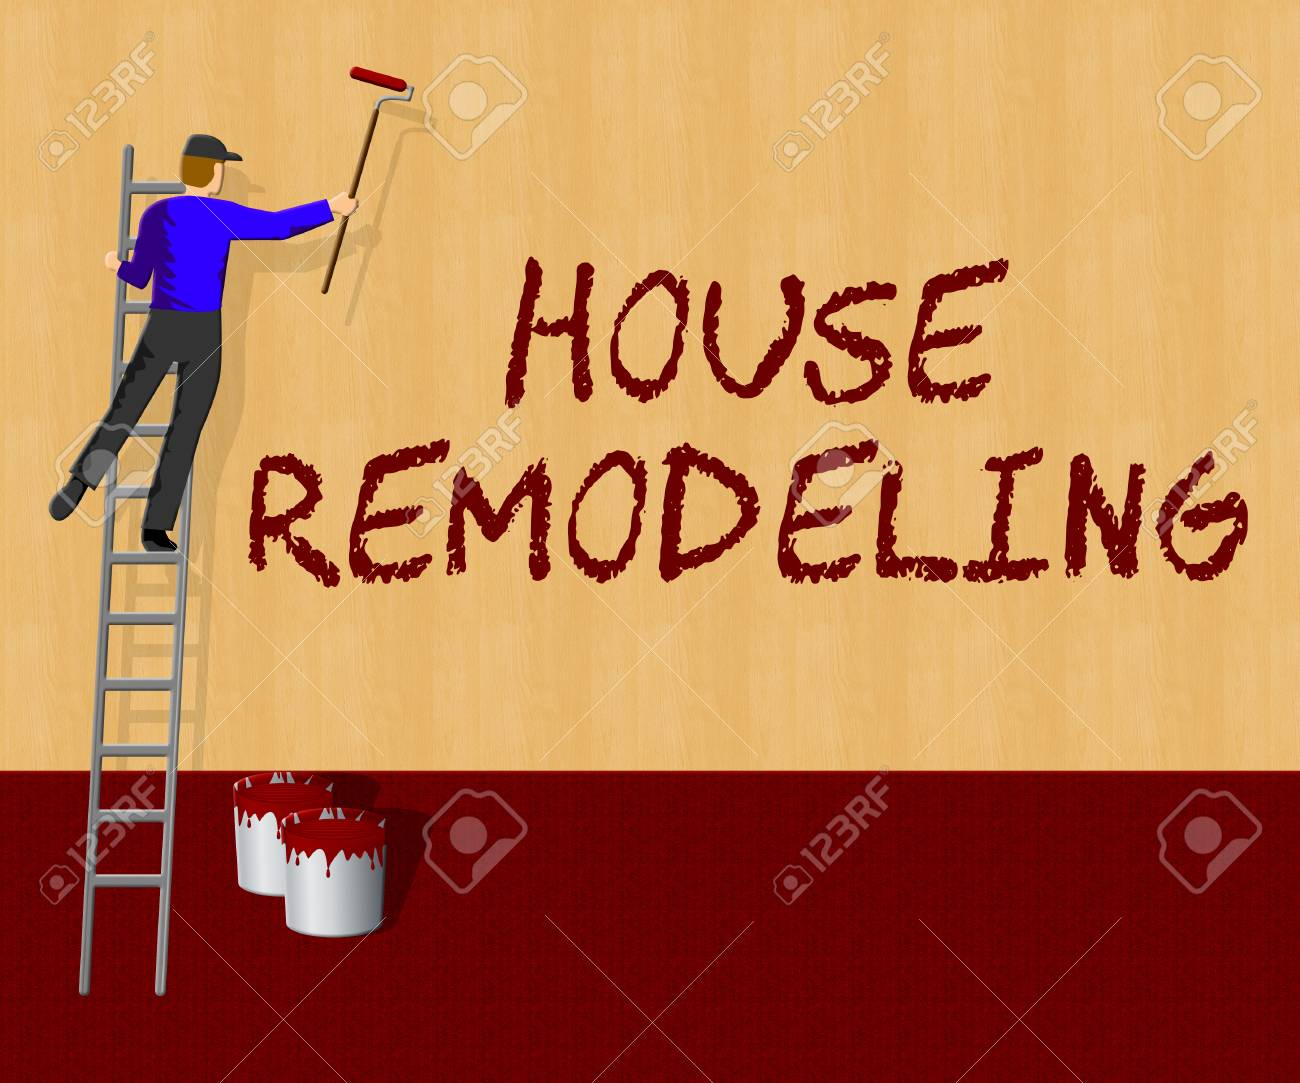 House Remodeling Shows on family shows, interior design shows, house cleaning shows, house building shows, house renovations shows, house repair shows, weight loss shows,